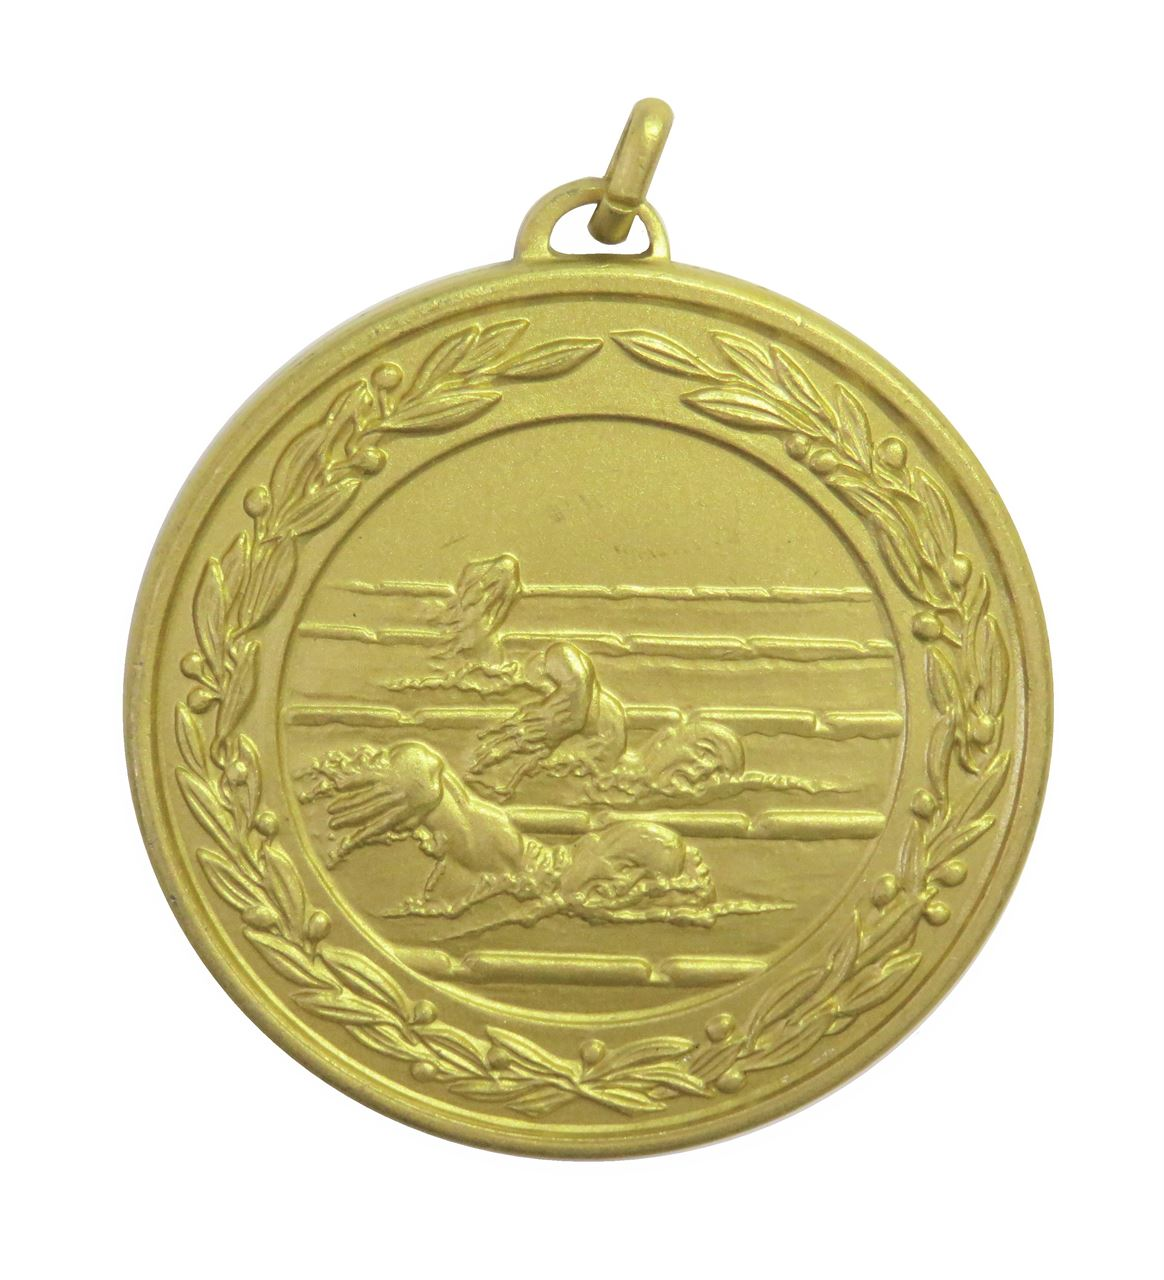 Gold Laurel Economy Male Swimmers Medal (size: 50mm) - 9694E